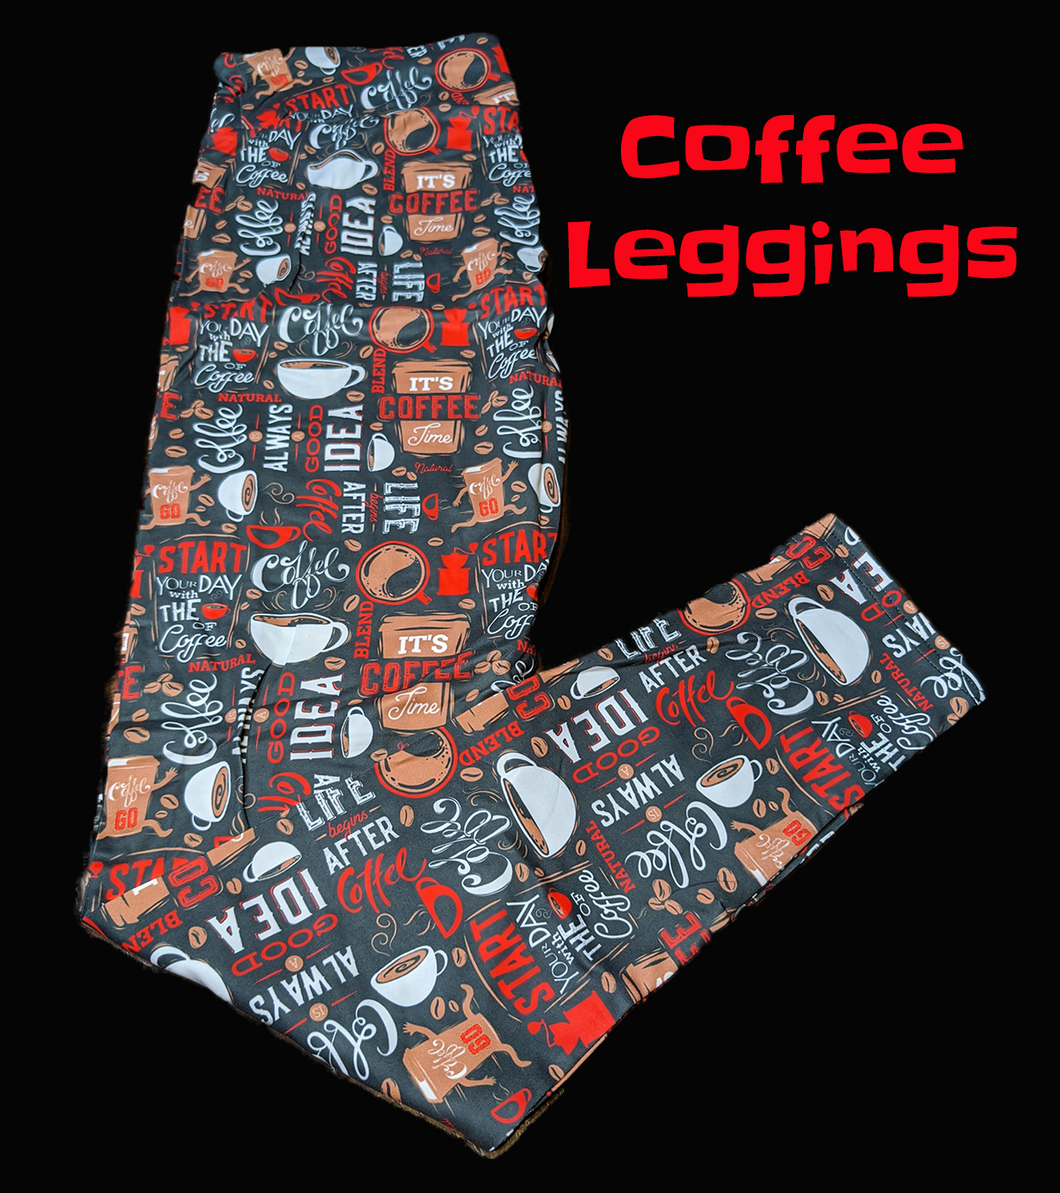 Coffee Leggings